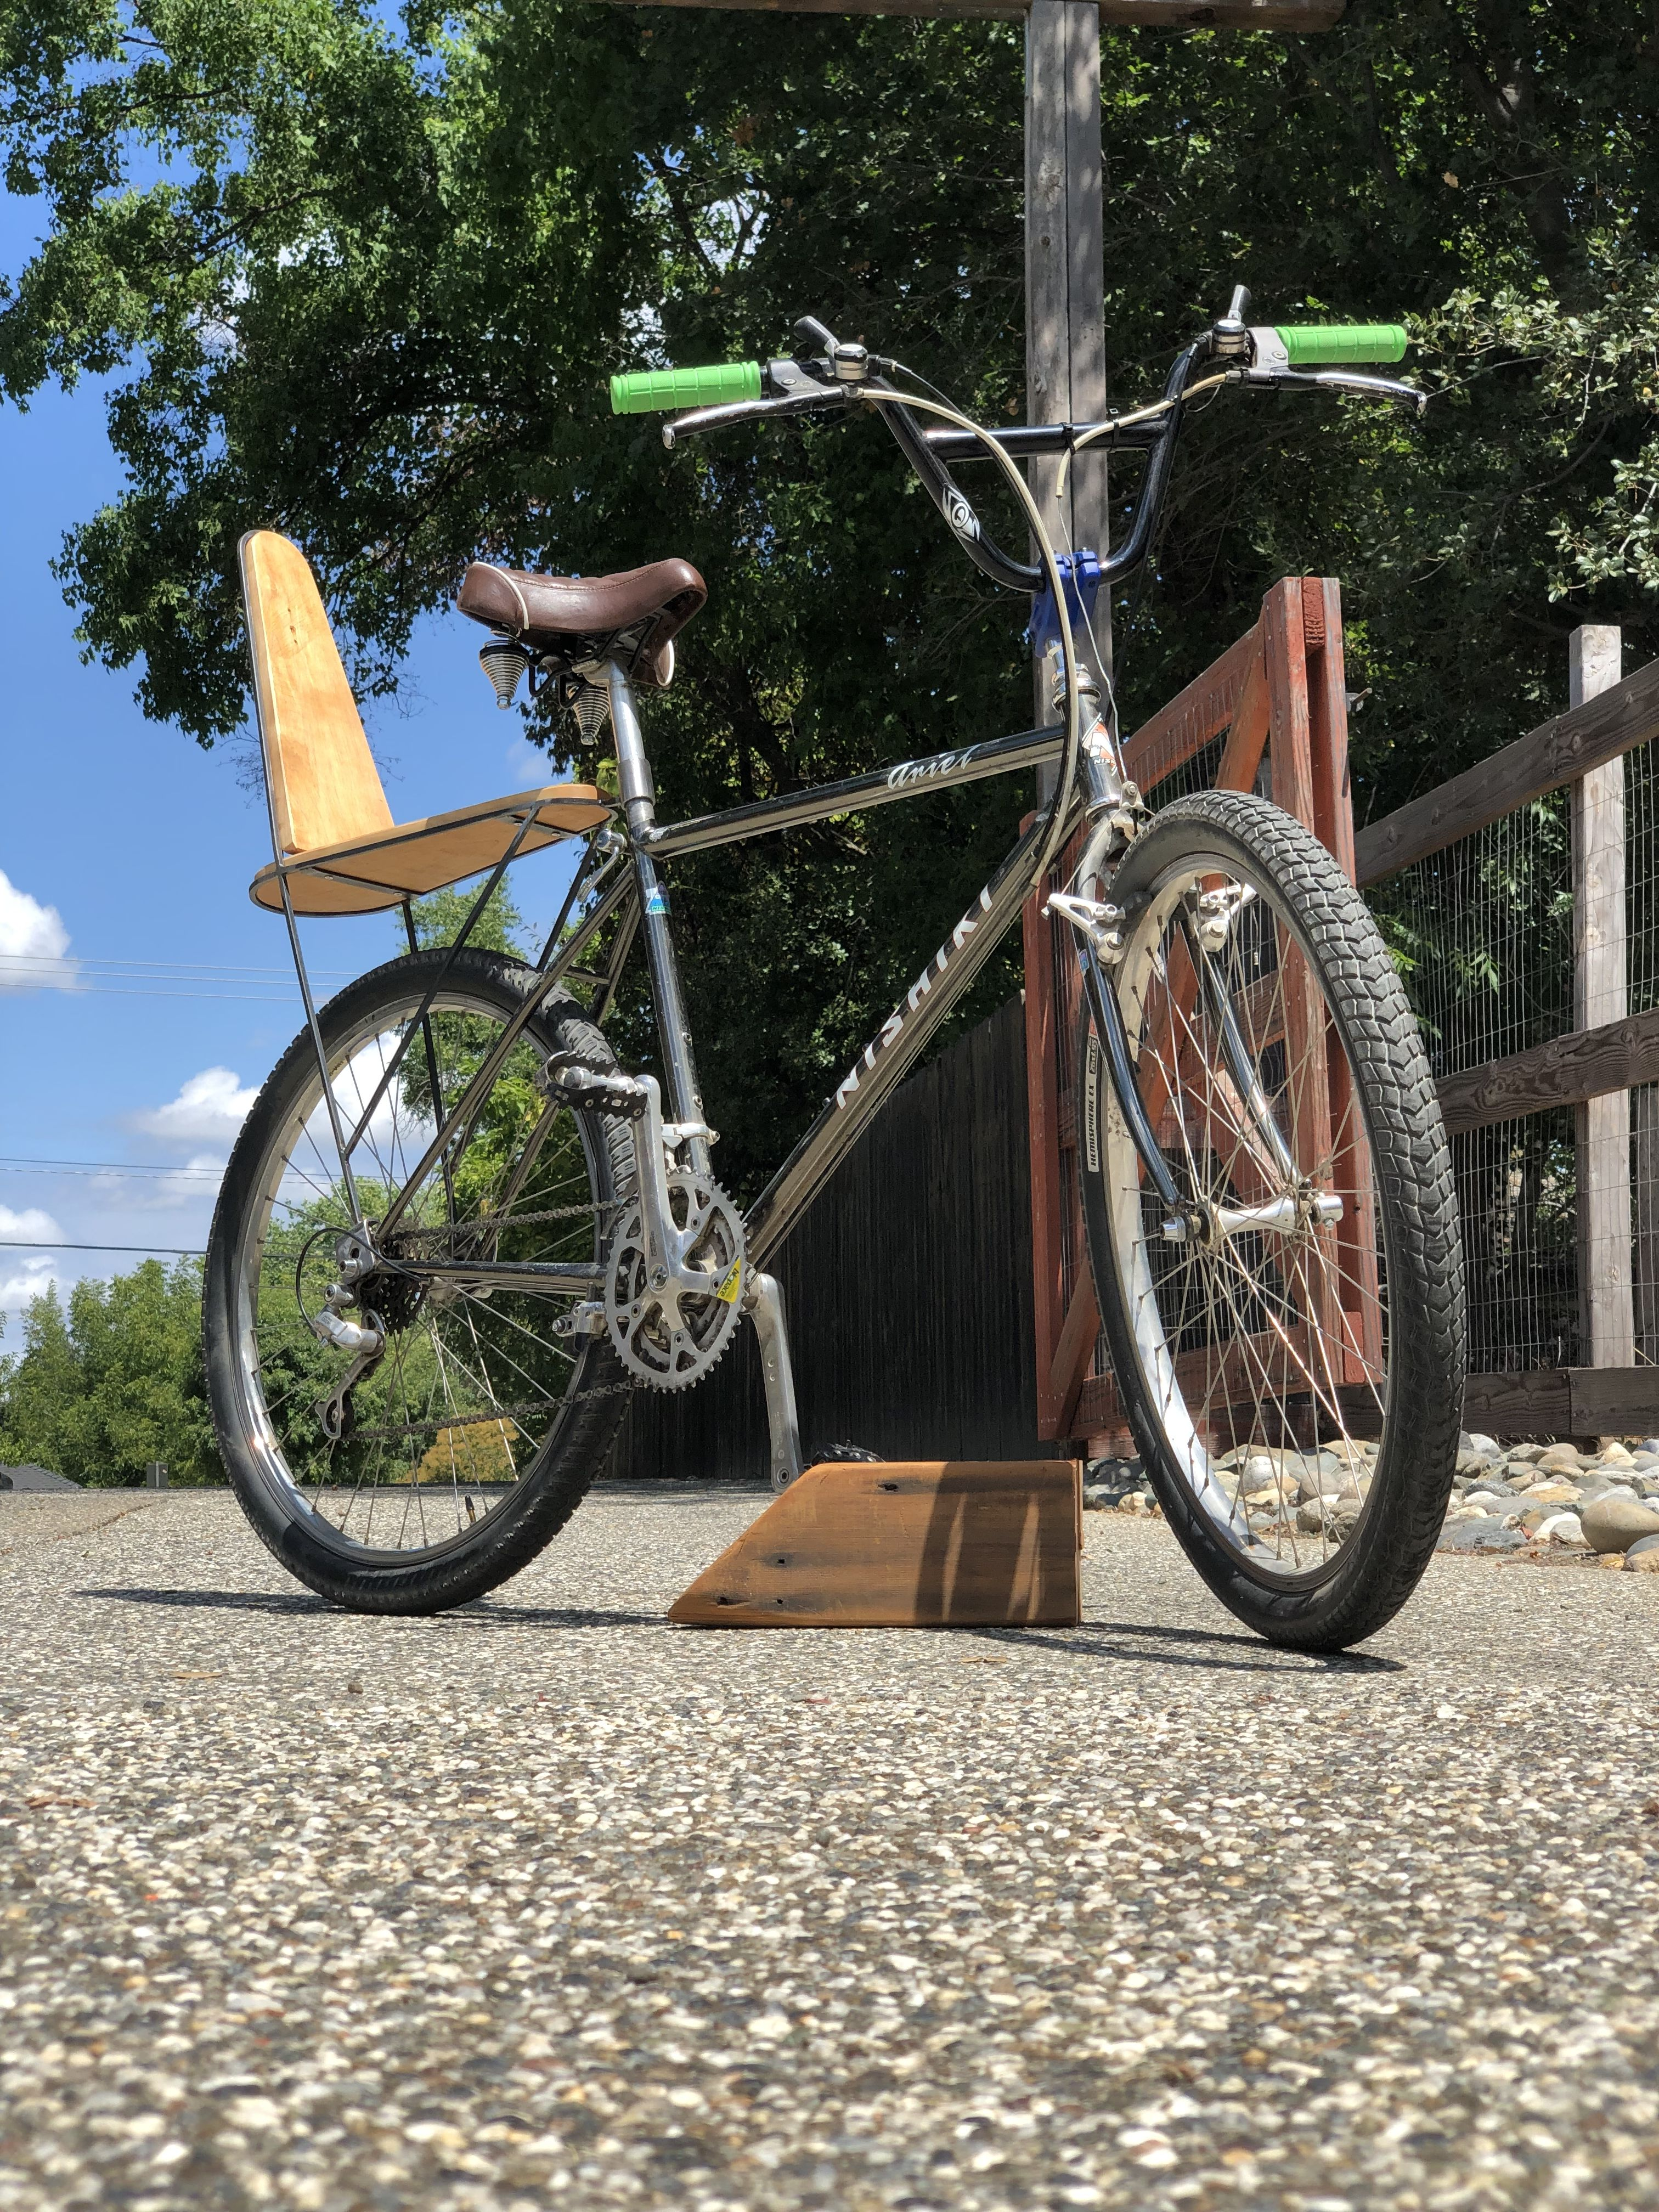 This Is An Old Mountain Bike With Bmx Handle Bars A Cruiser Seat